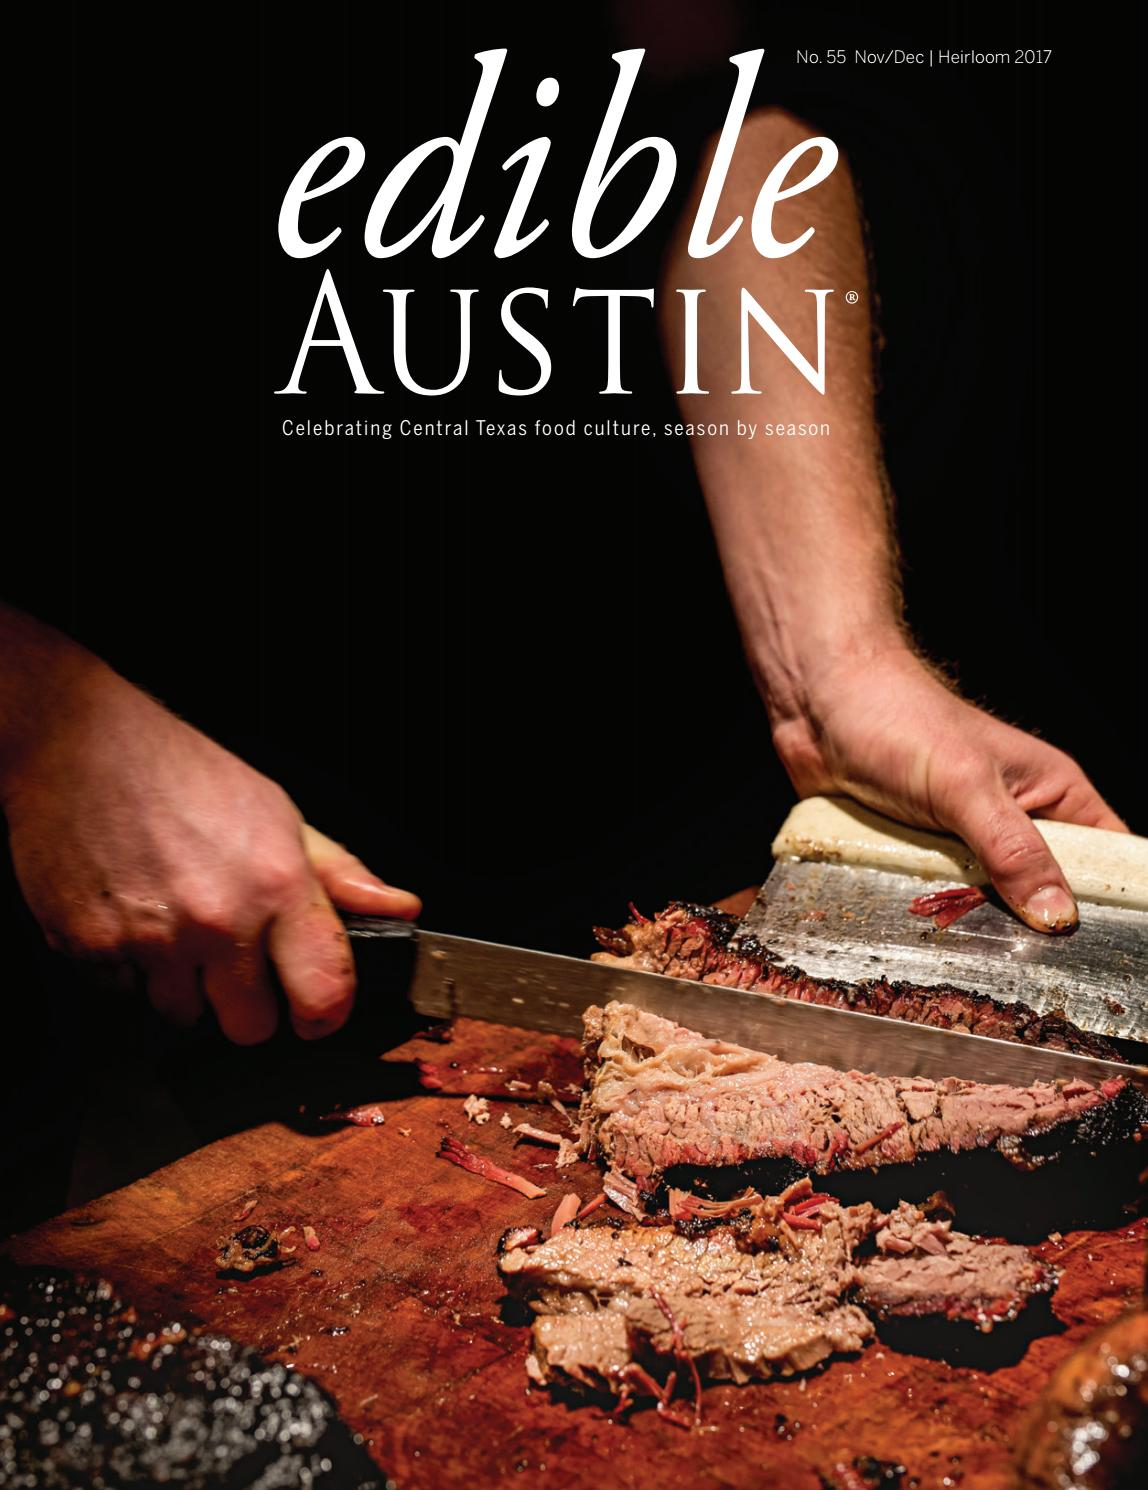 Edible Austin Heirloom 2017 by Edible Austin - issuu